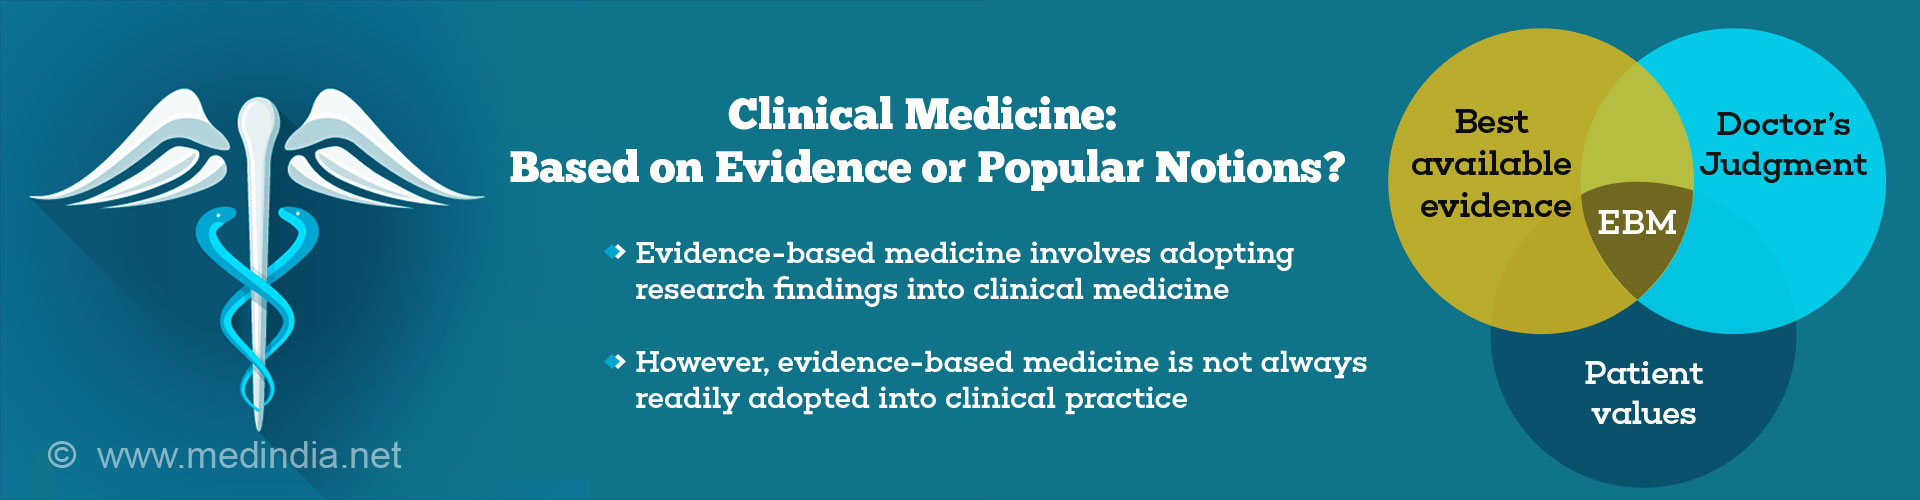 Clinical Medicine: Based on Evidence or Popular Notions?